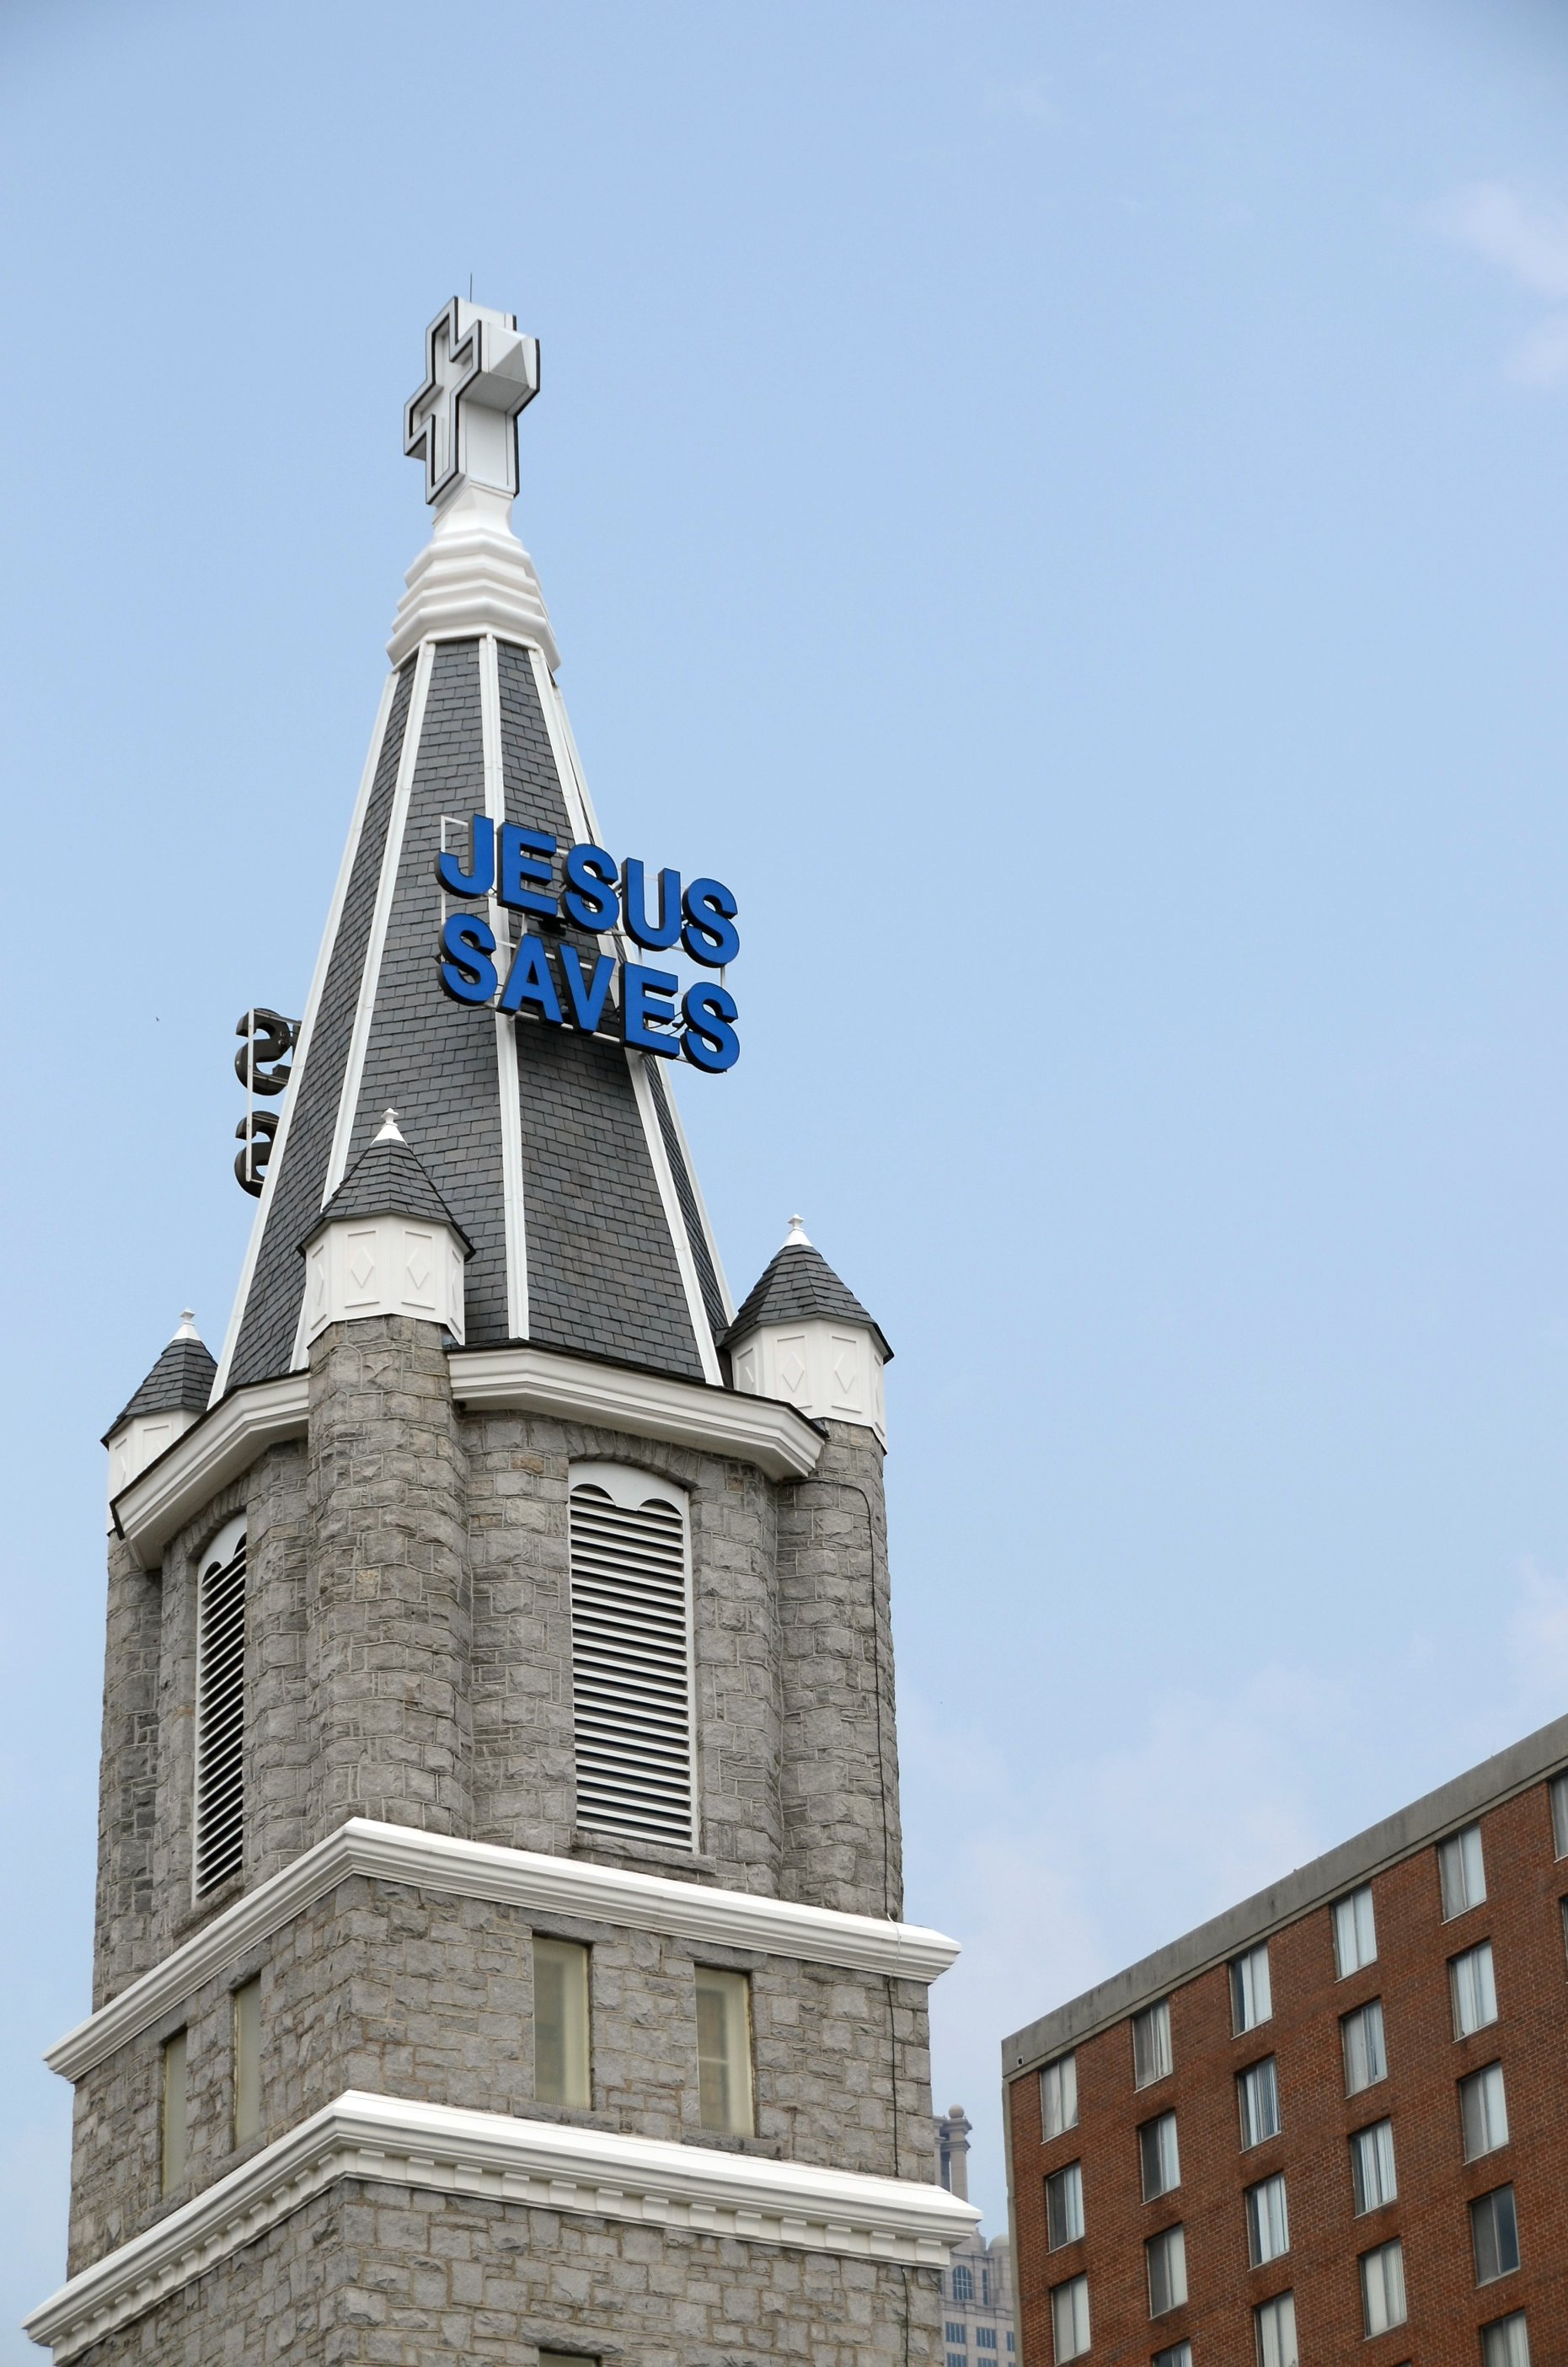 A photo of the Big Bethel AME church steeple.